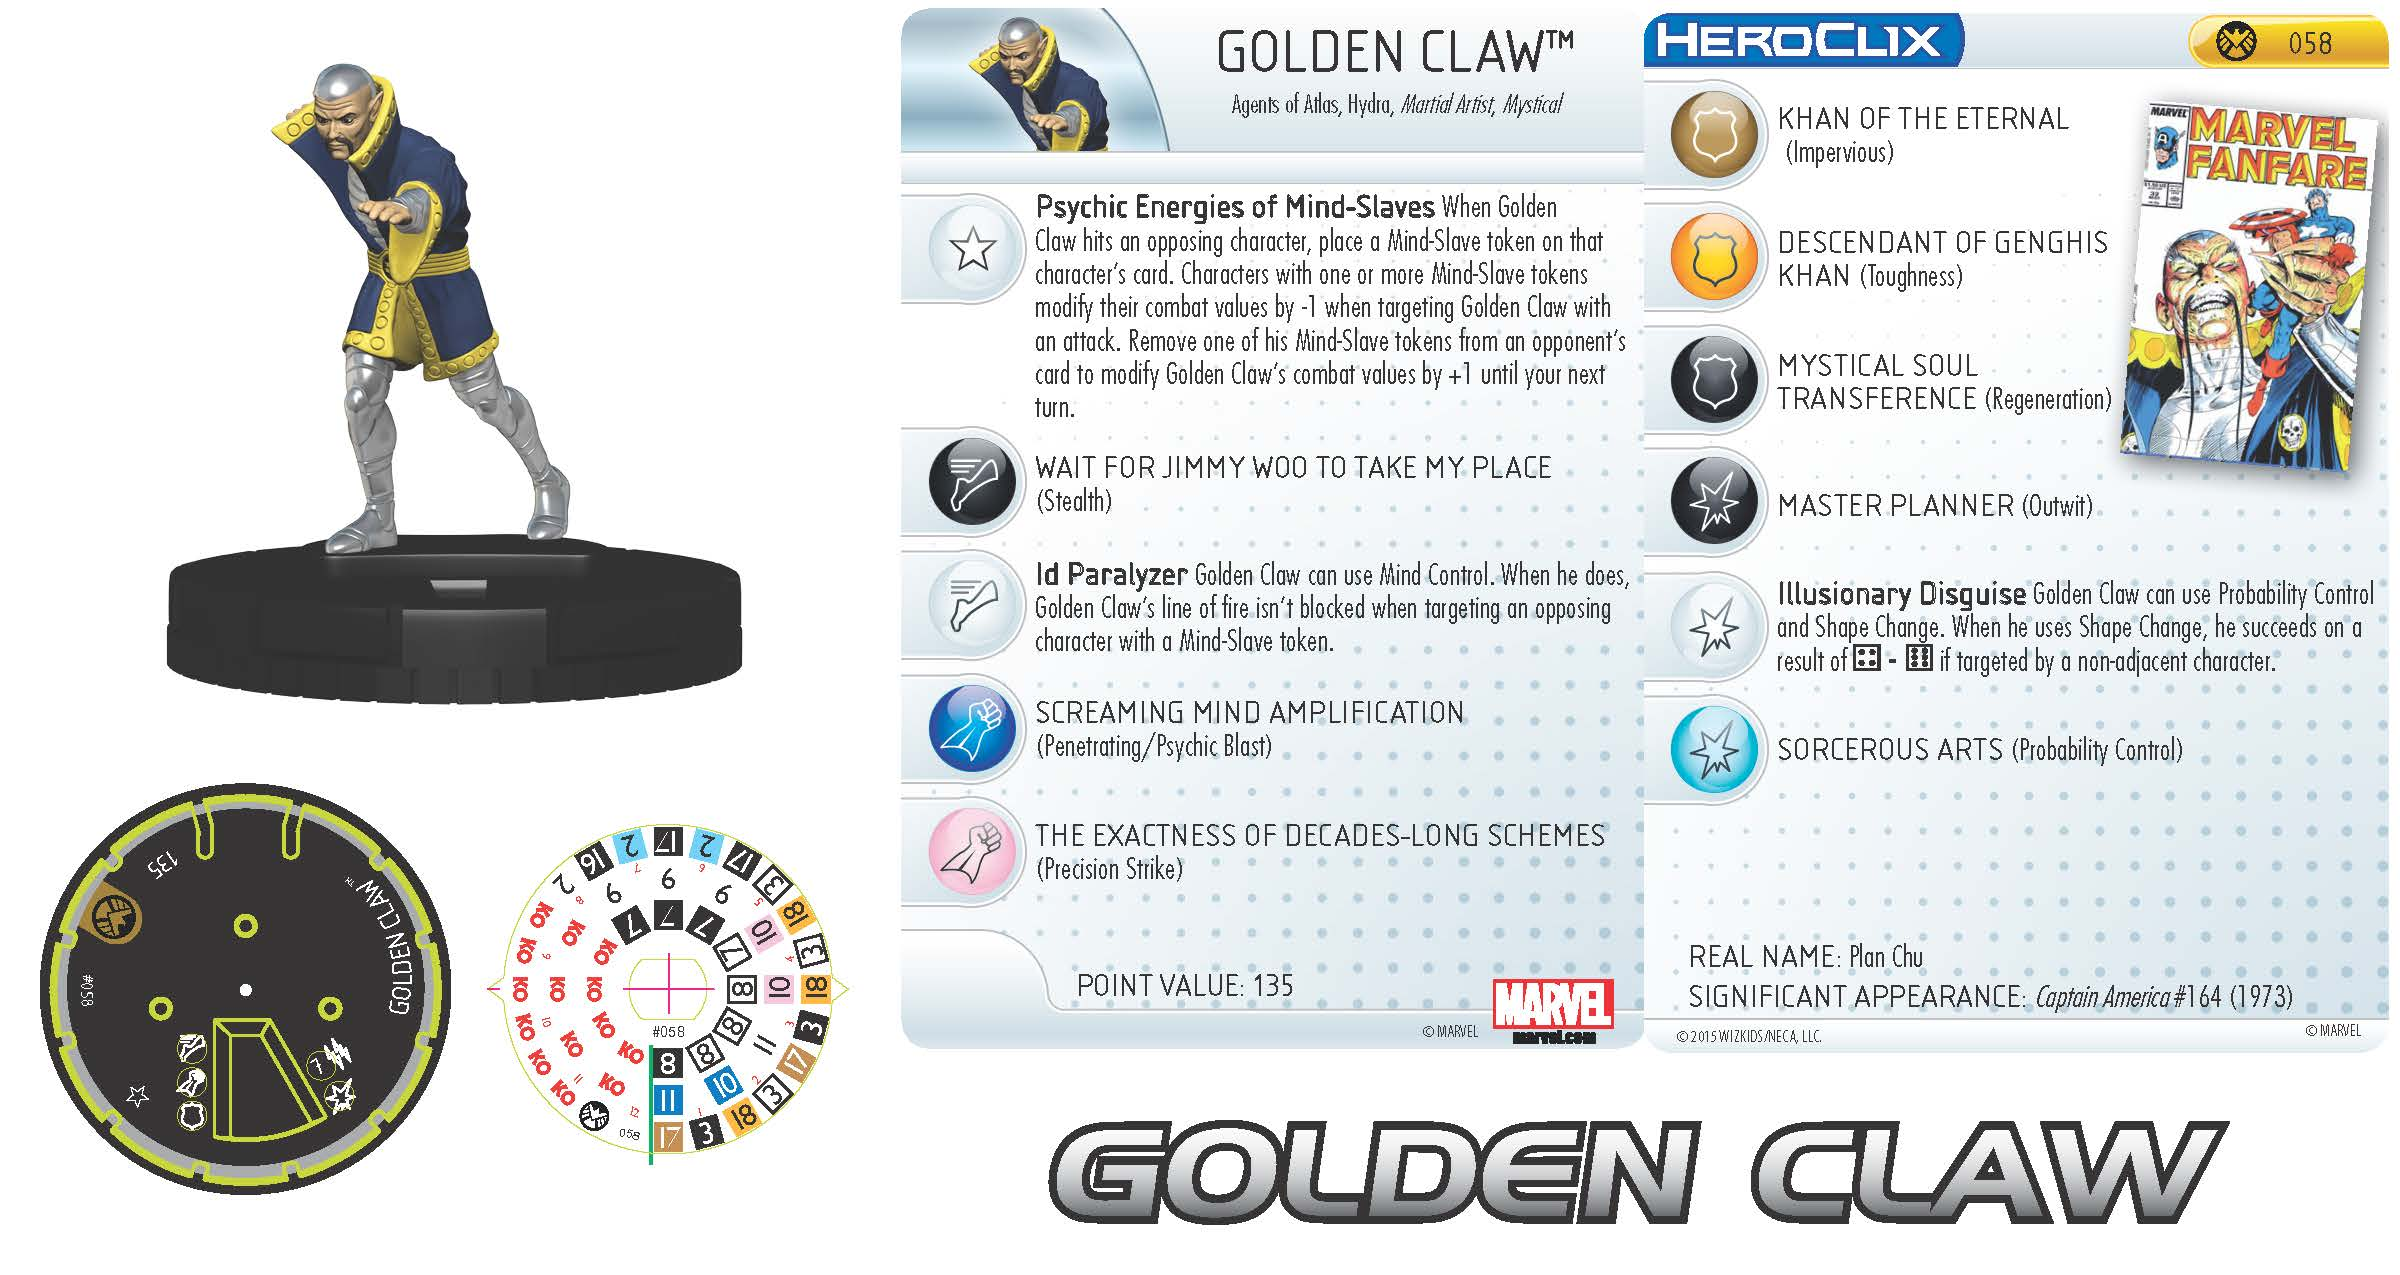 Marvel HeroClix: Nick Fury, Agent of S.H.I.E.L.D. - Golden Claw